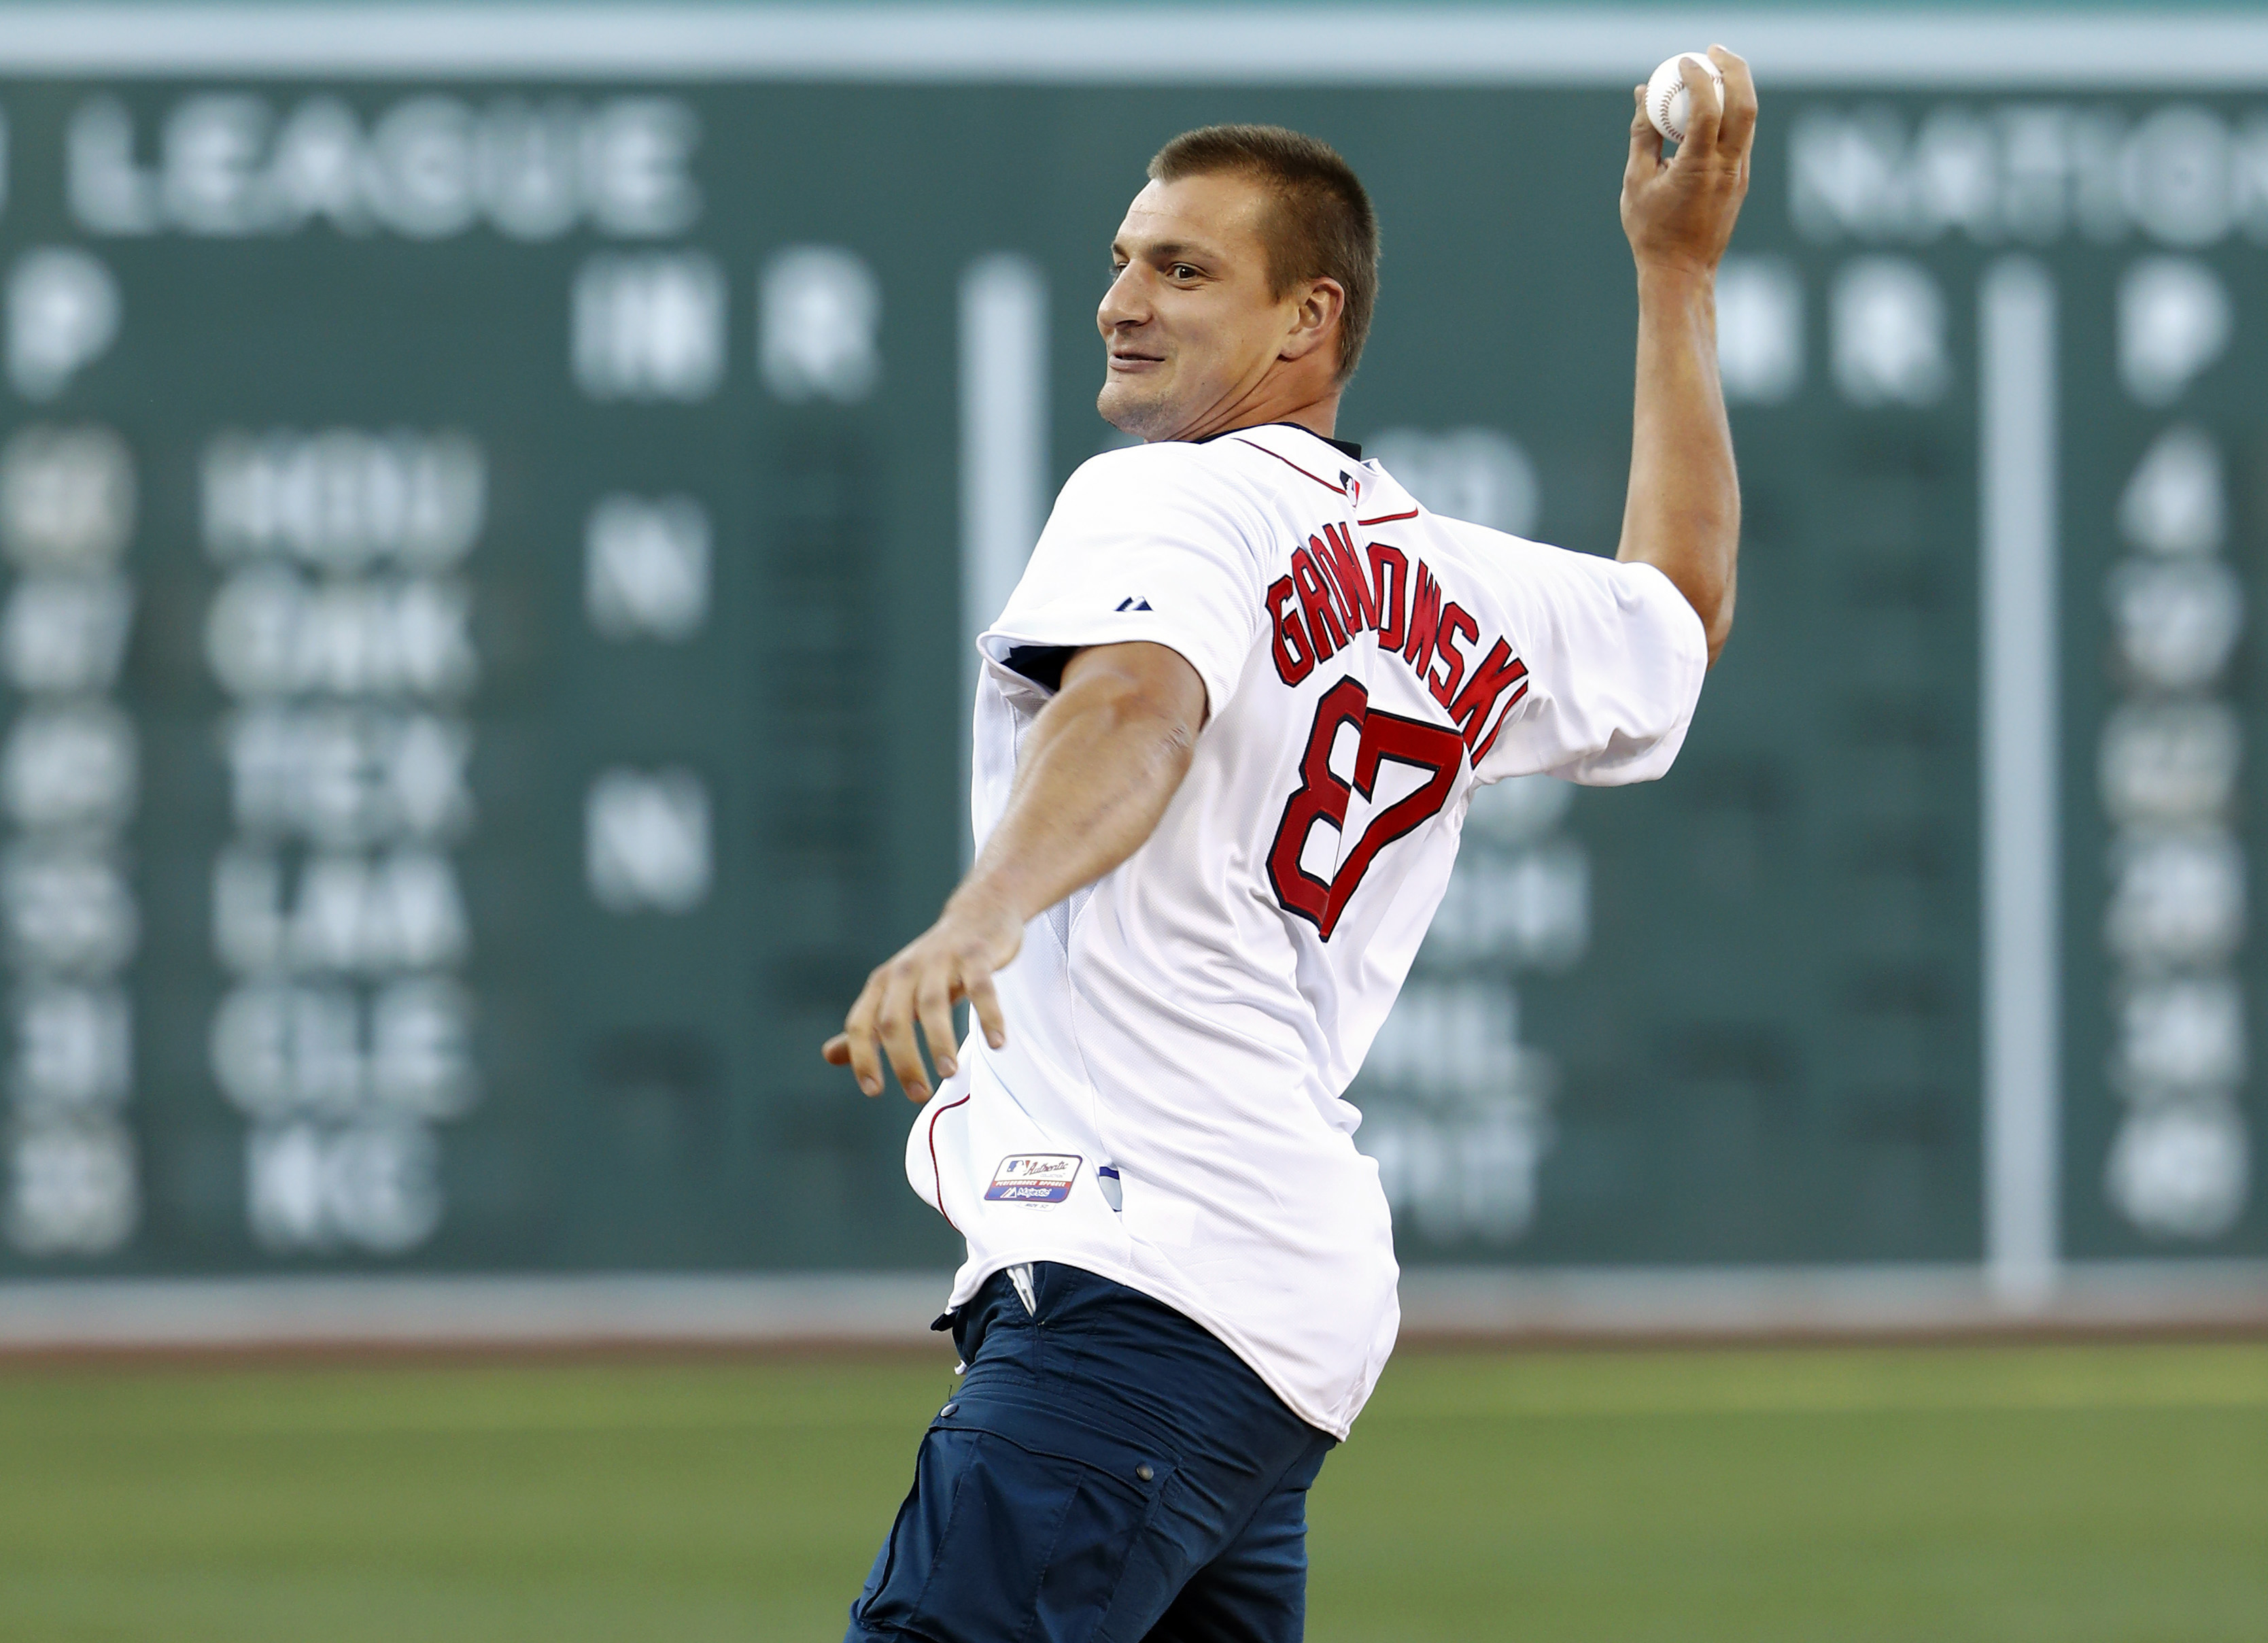 It is still baseball season, so here's a picture of the best tight end in the game throwing a baseball.